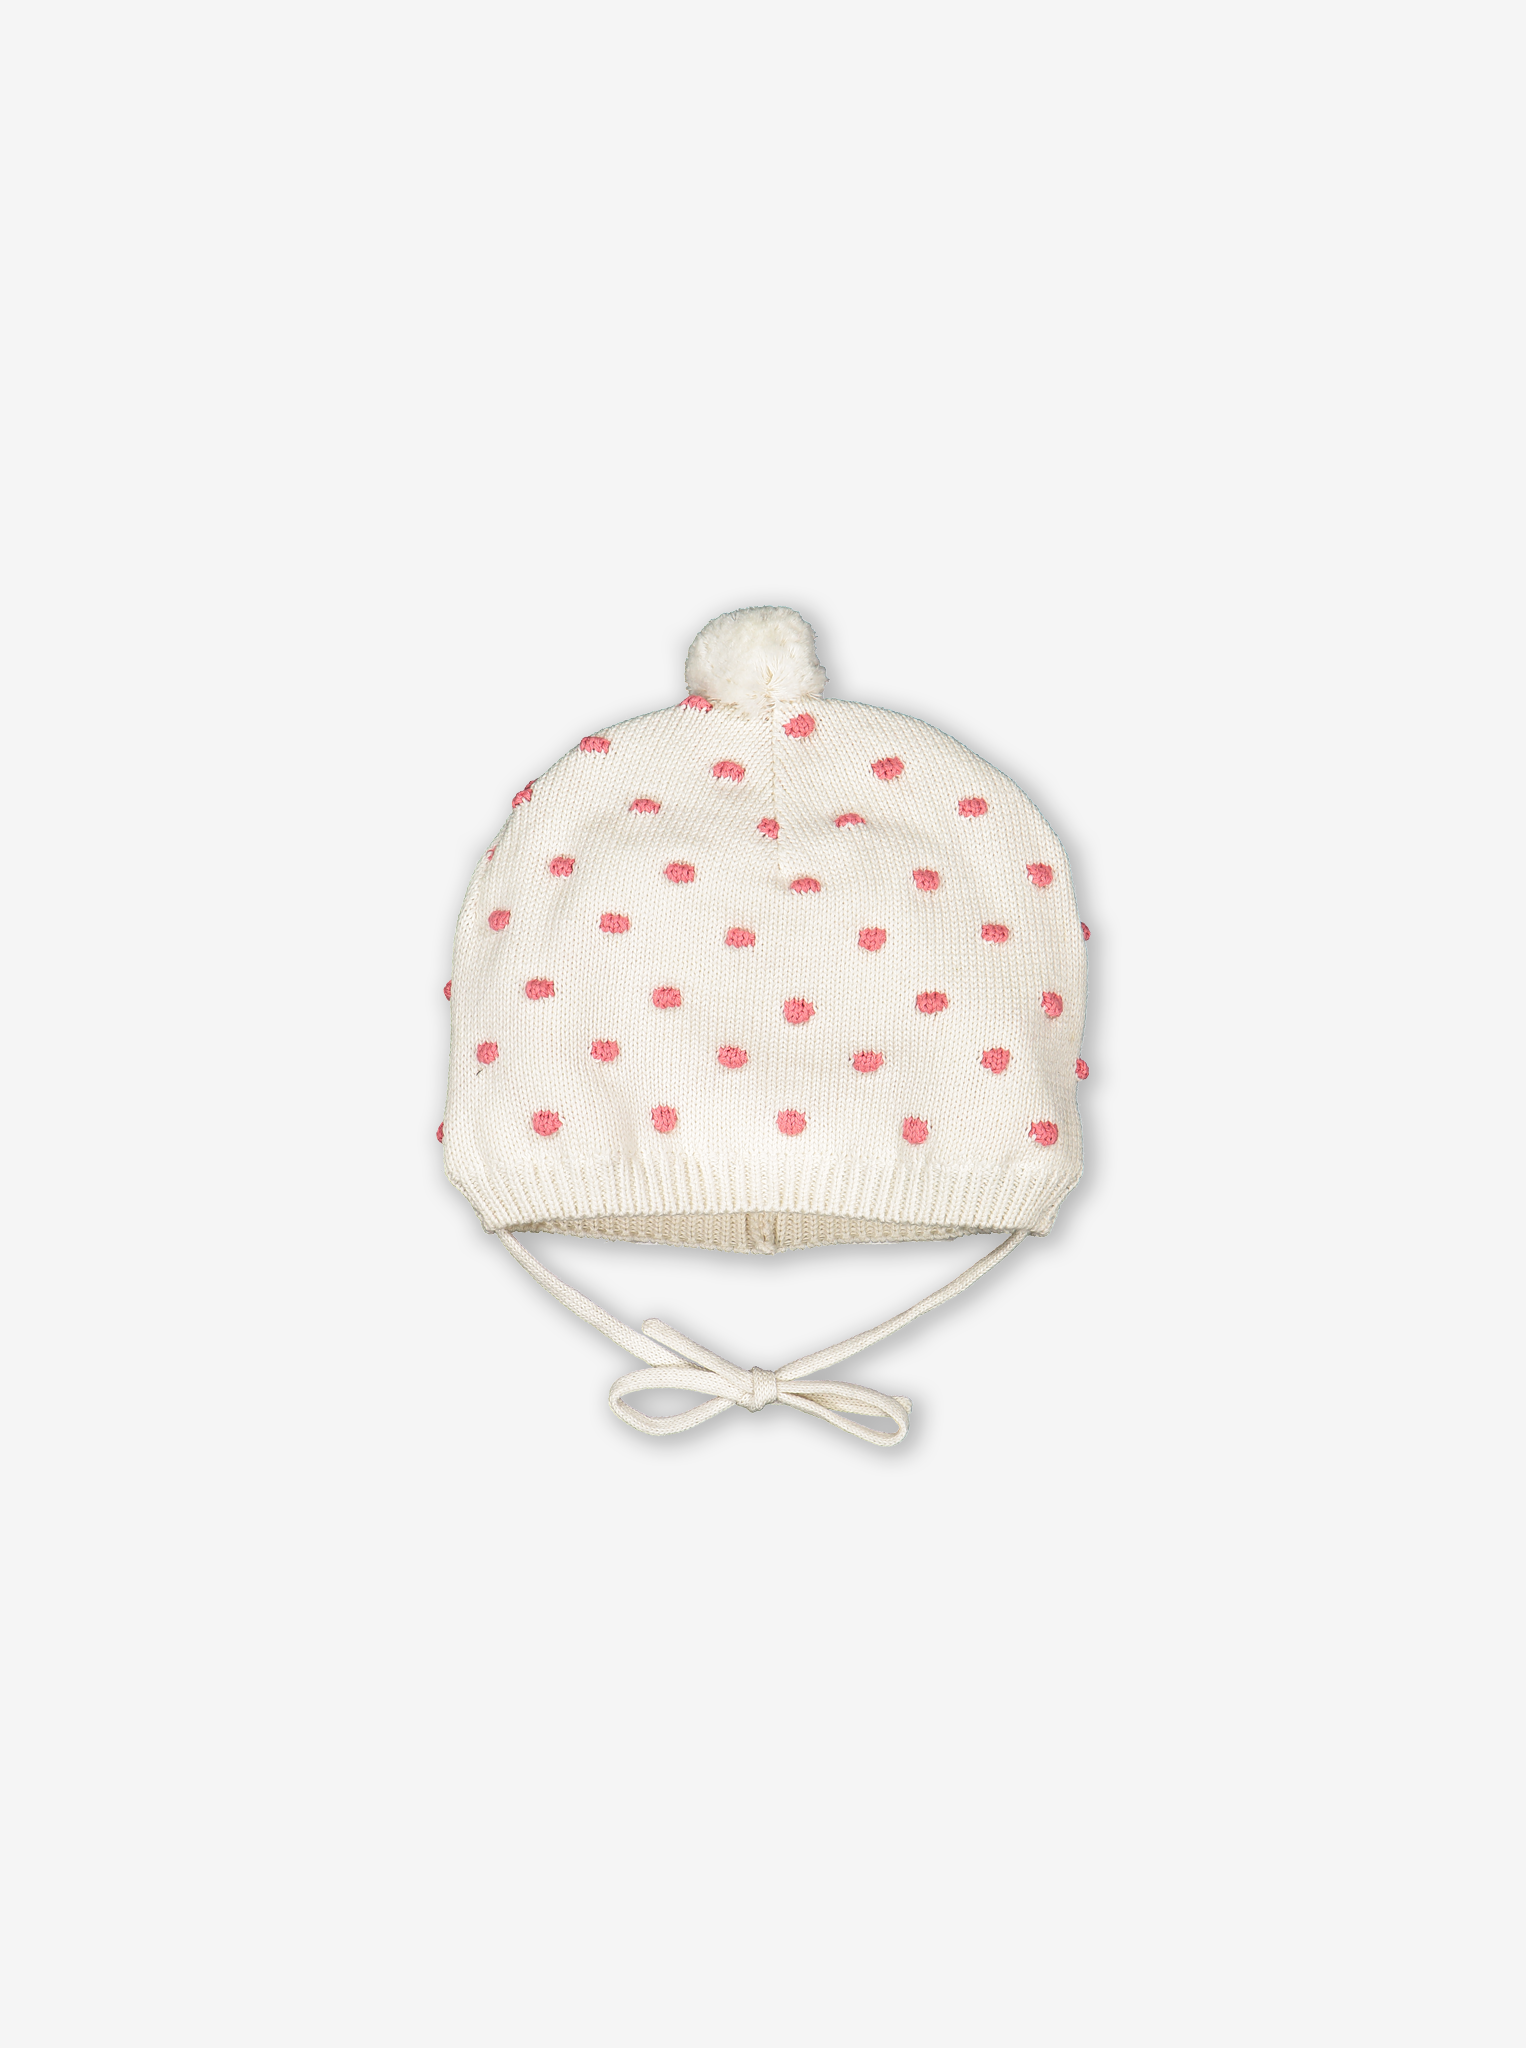 Dotty Knitted Baby Hat